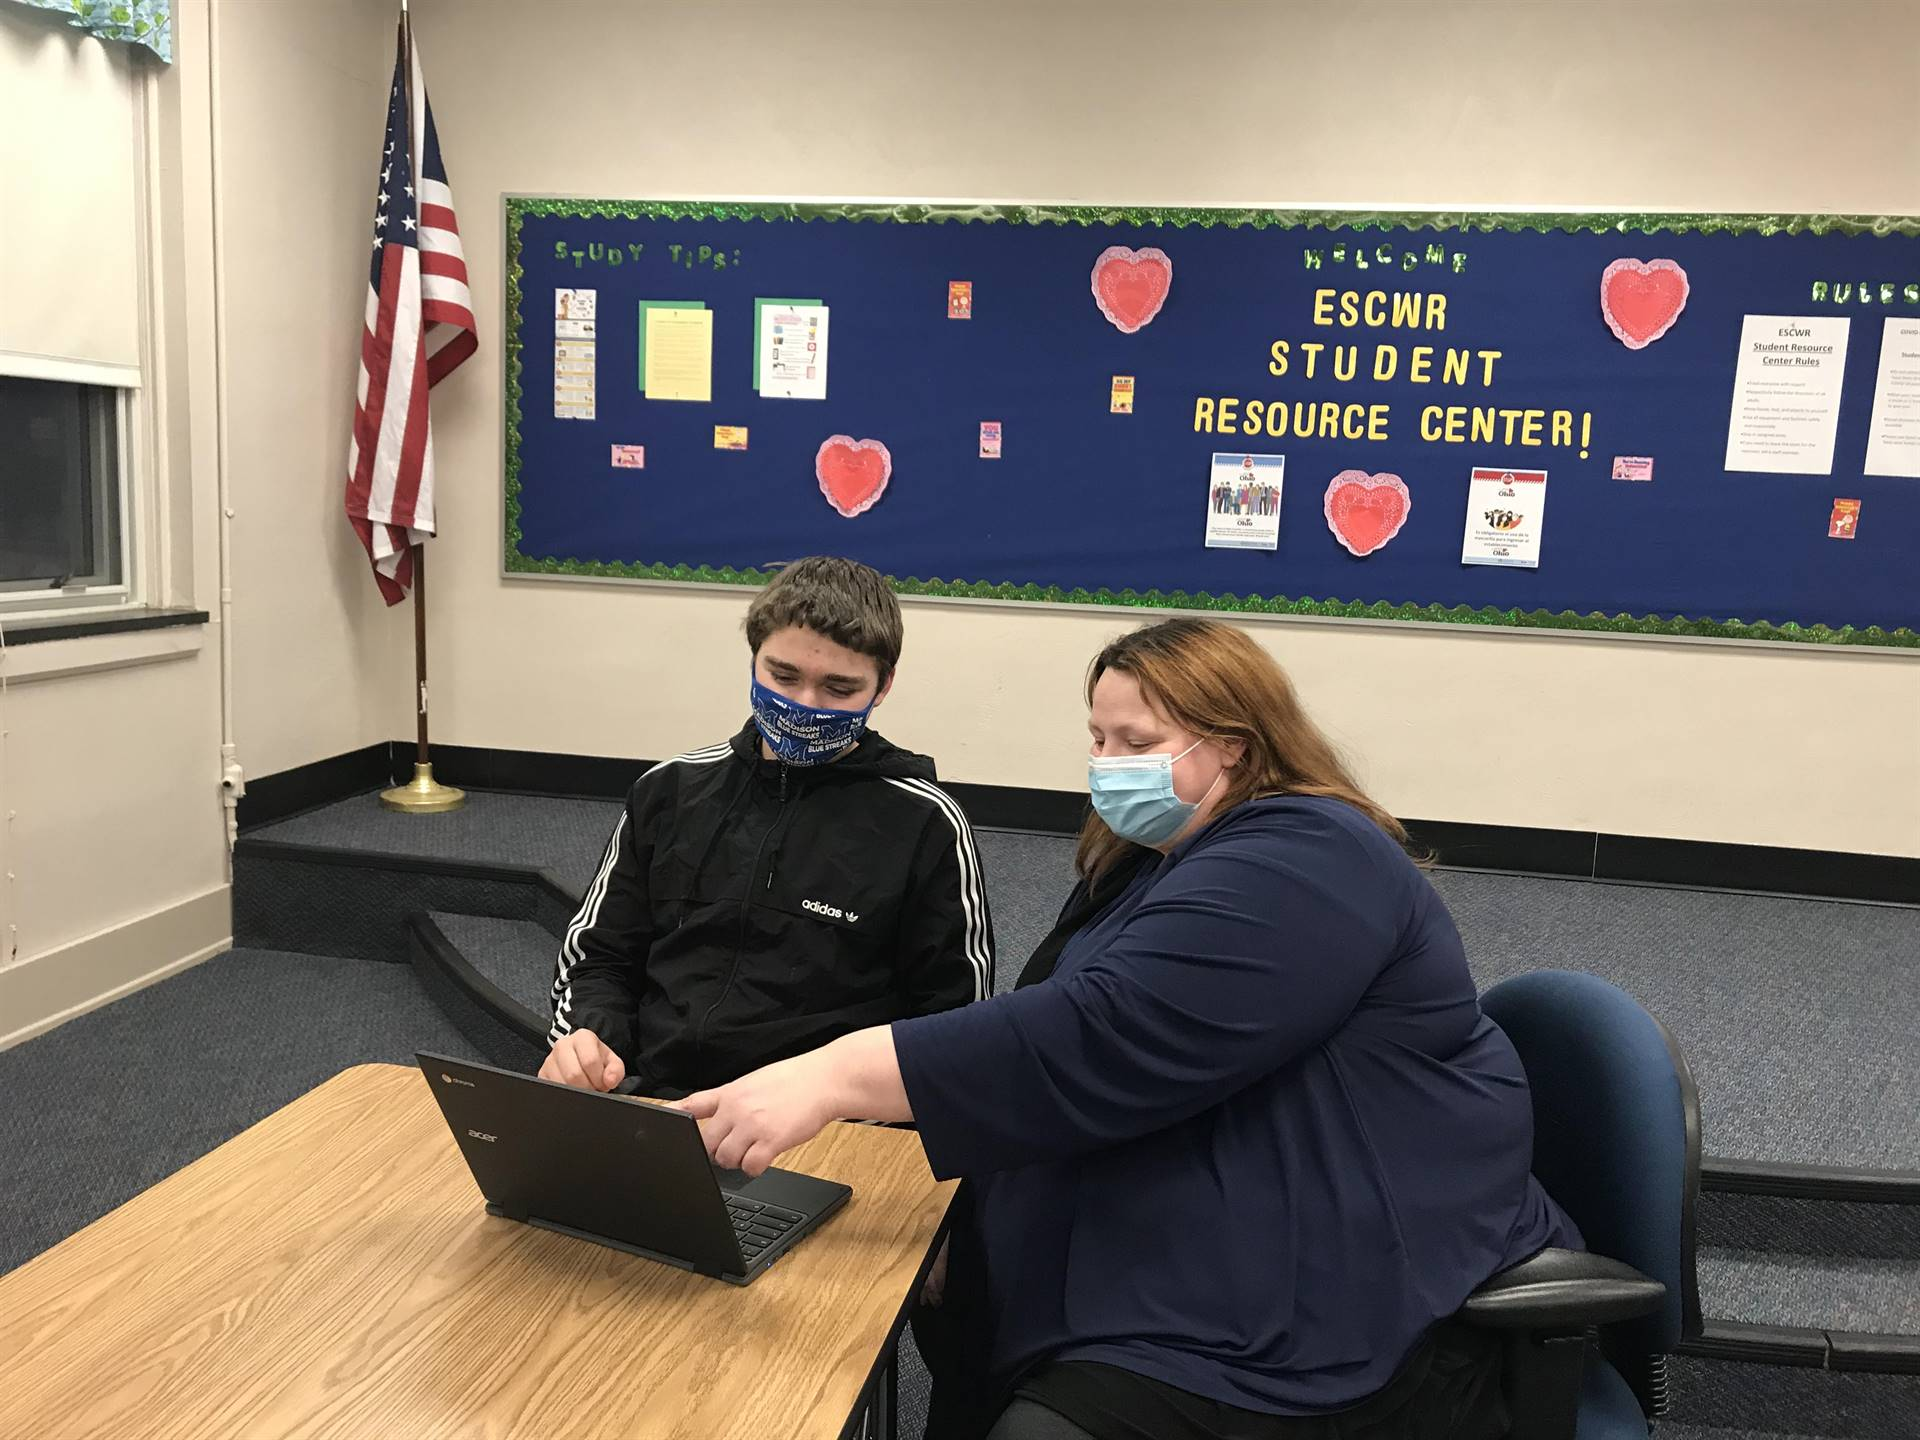 Rebecca Bruening provides tutoring services to students at our SRC!